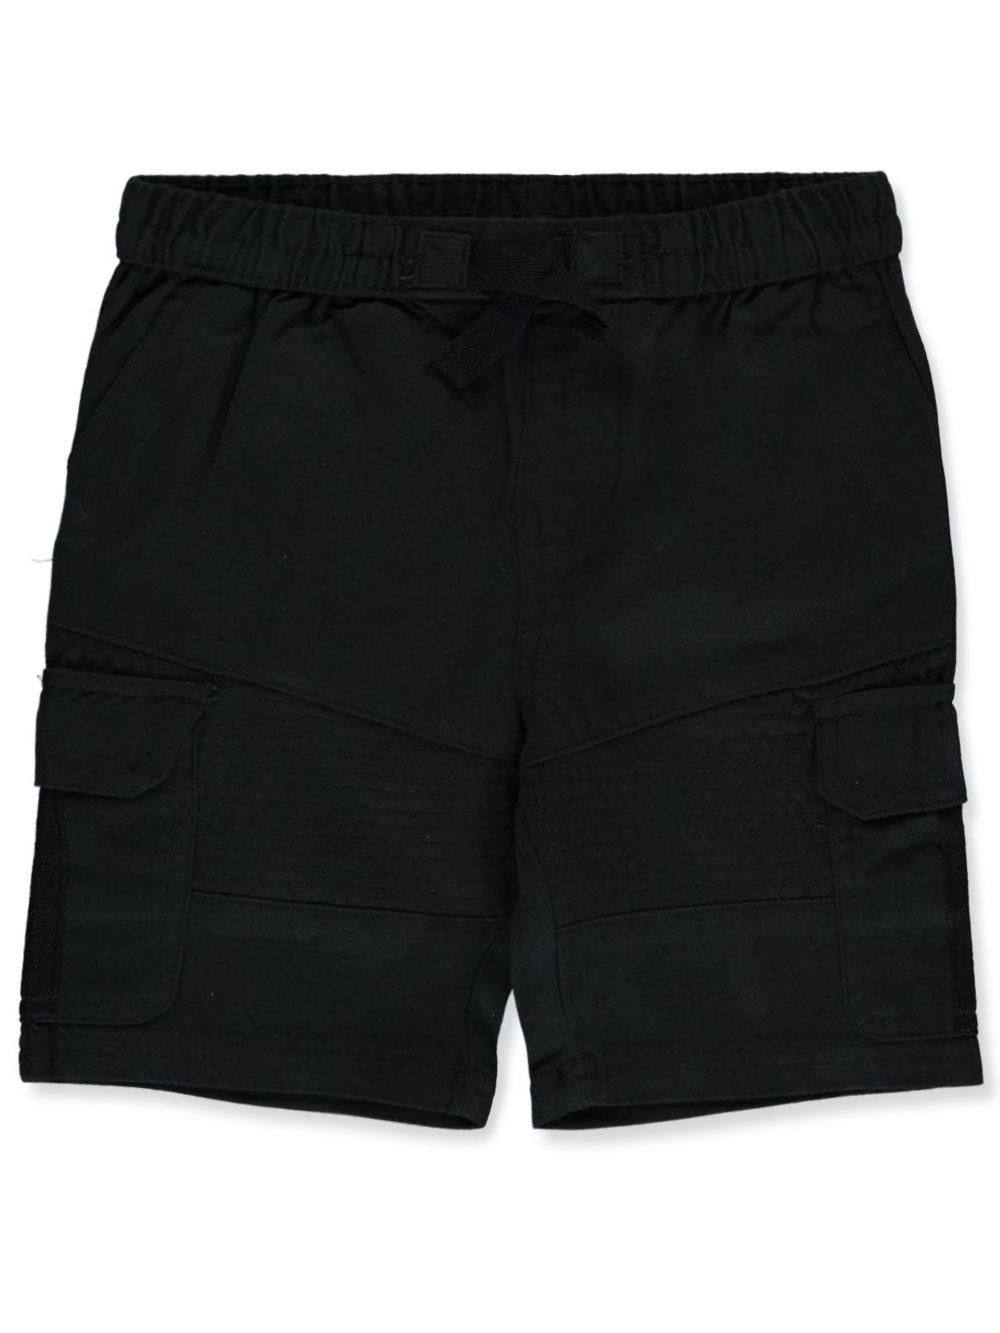 Boys' Pull-On Cargo Shorts